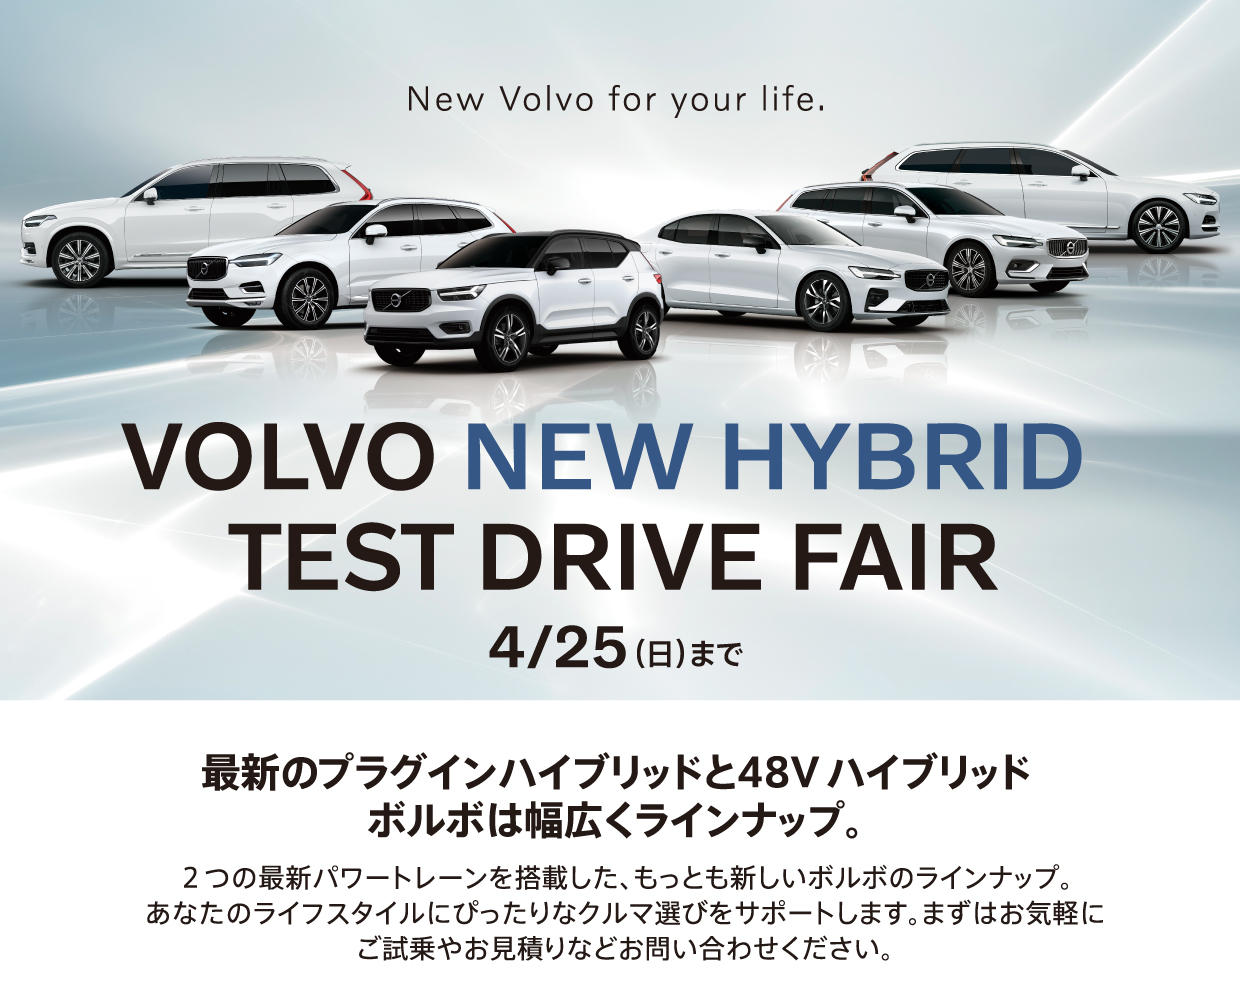 VOLVO NEW HYBRID TEST DRIVE FAIR